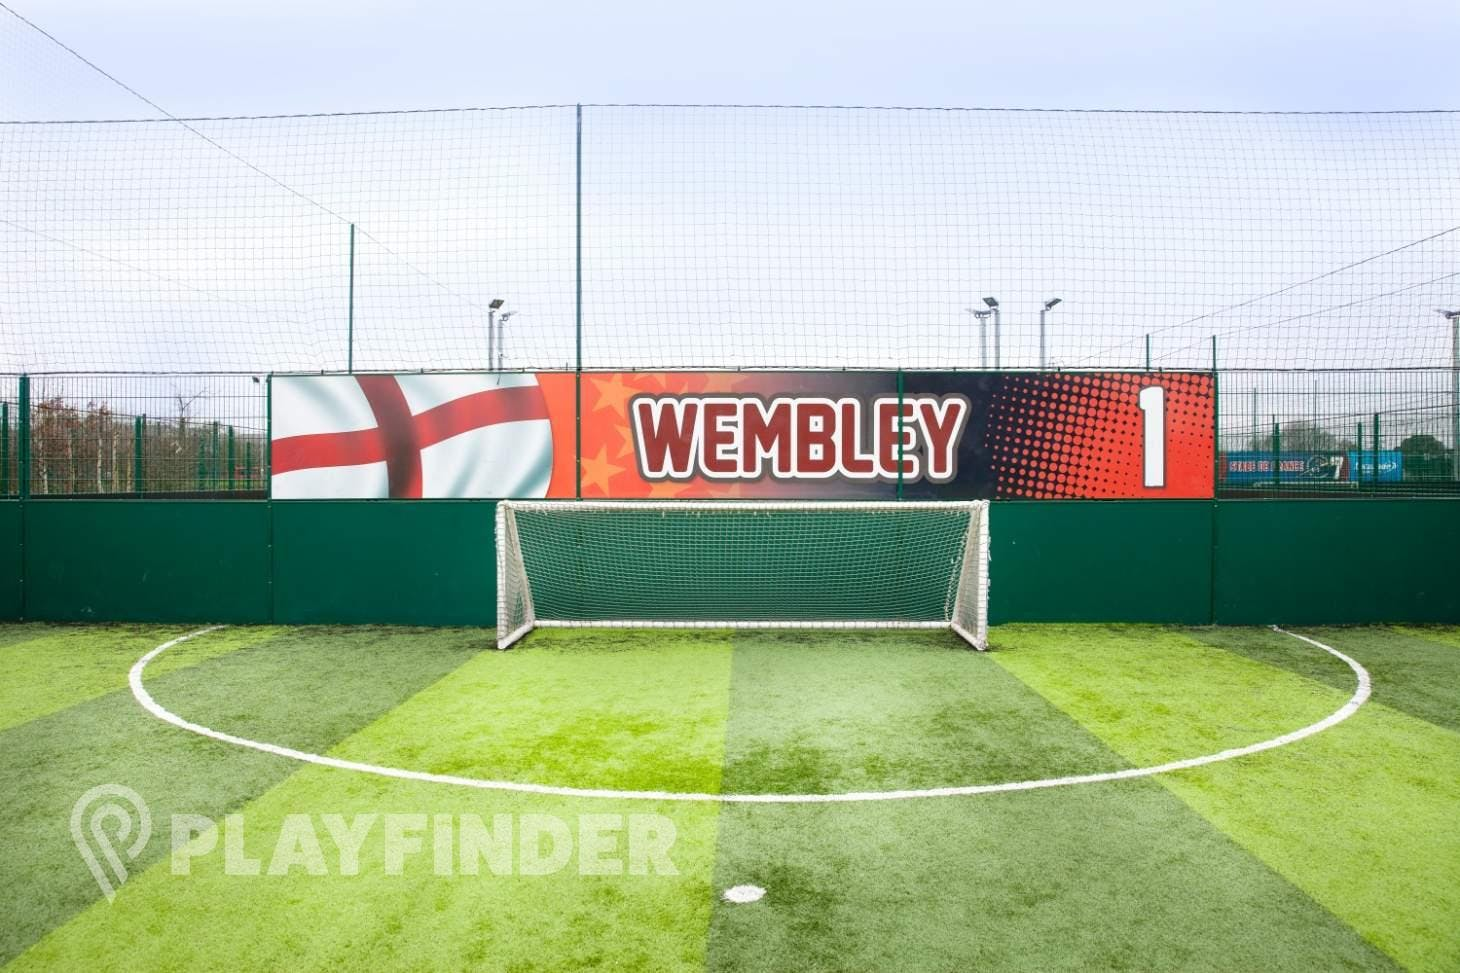 Goals Southampton 5 a side | 3G Astroturf football pitch